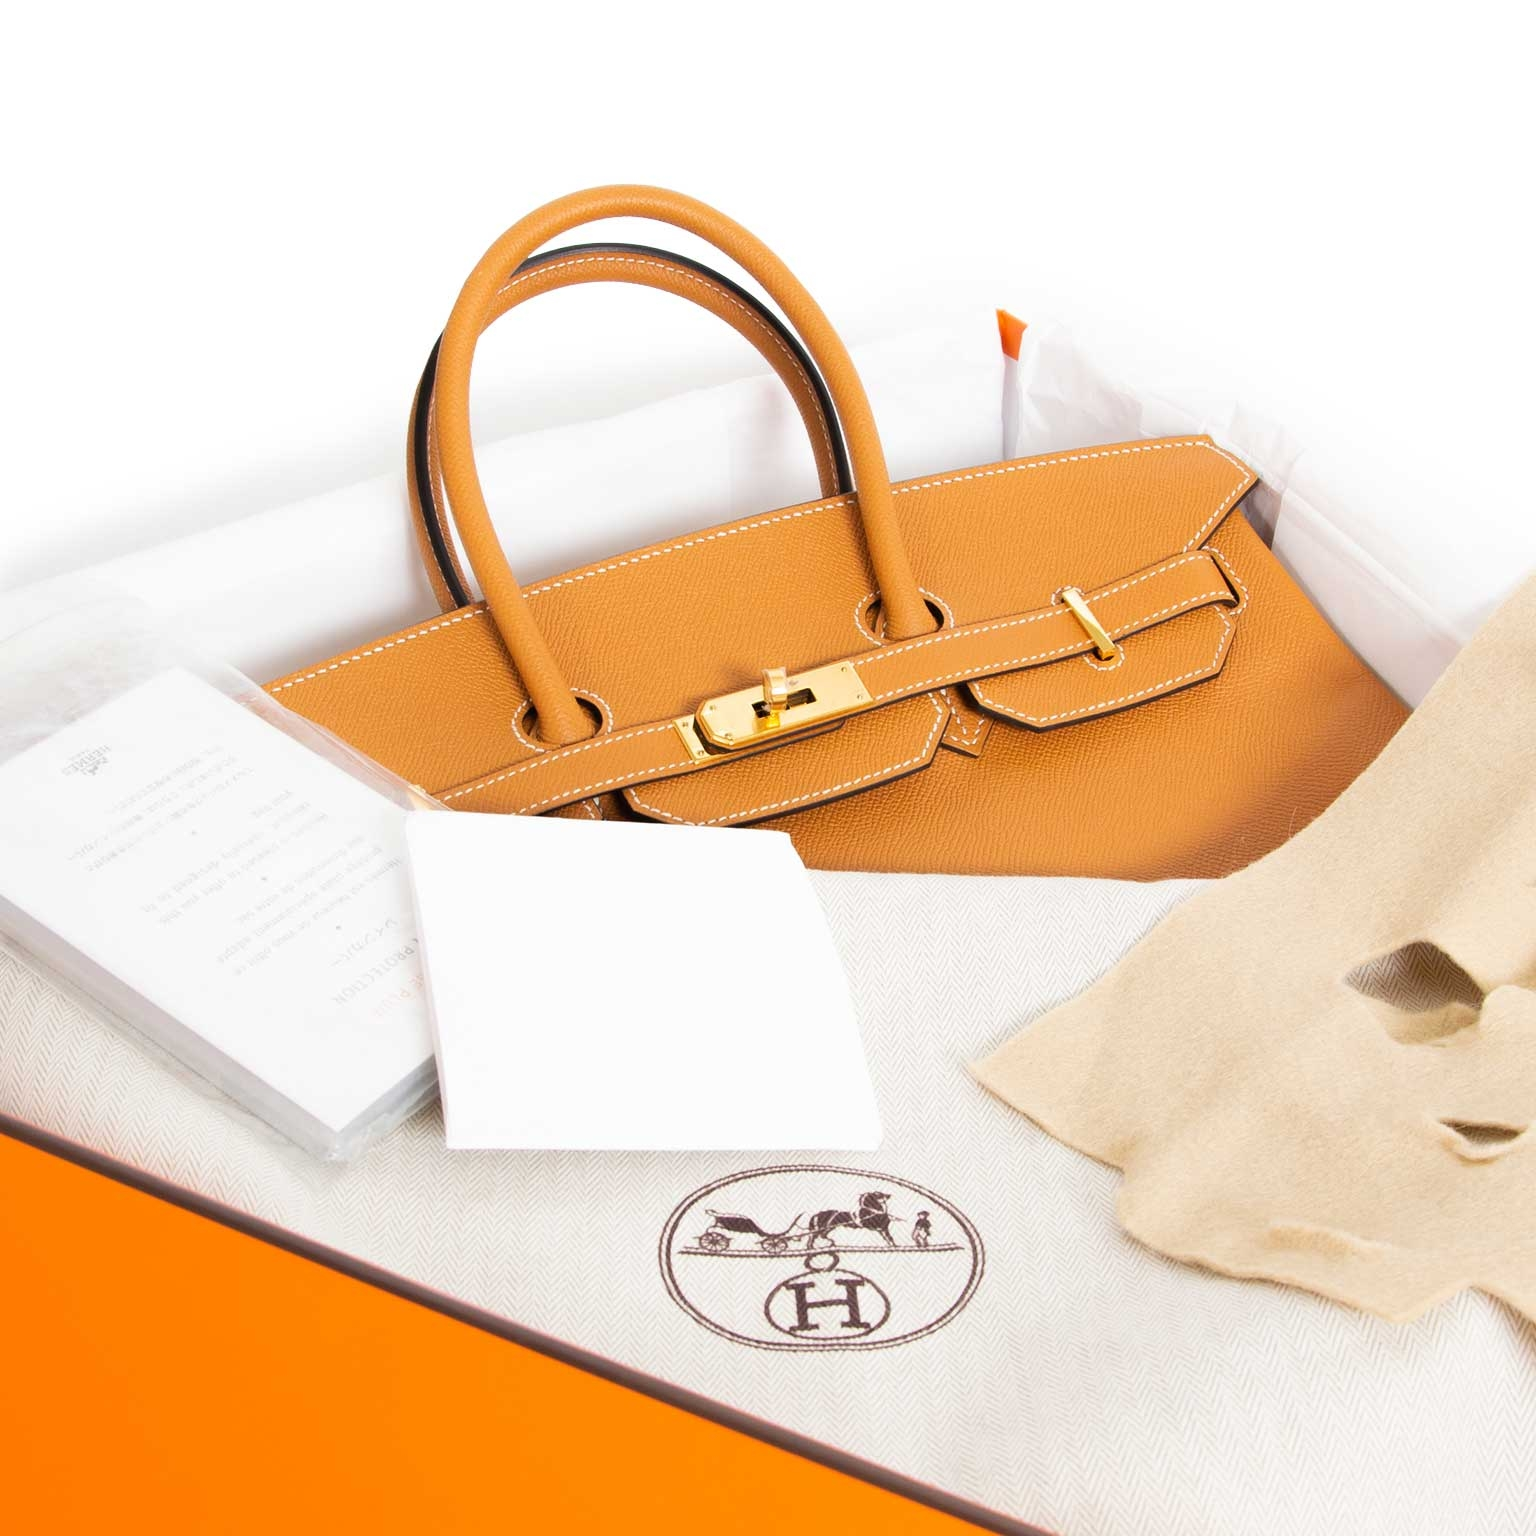 ... secondhand luxury Buy your authentic Hermès Birkin 35 Veau Epsom Toffee  GHW only at Labellov · Hermes d0fd80a6b8a8d